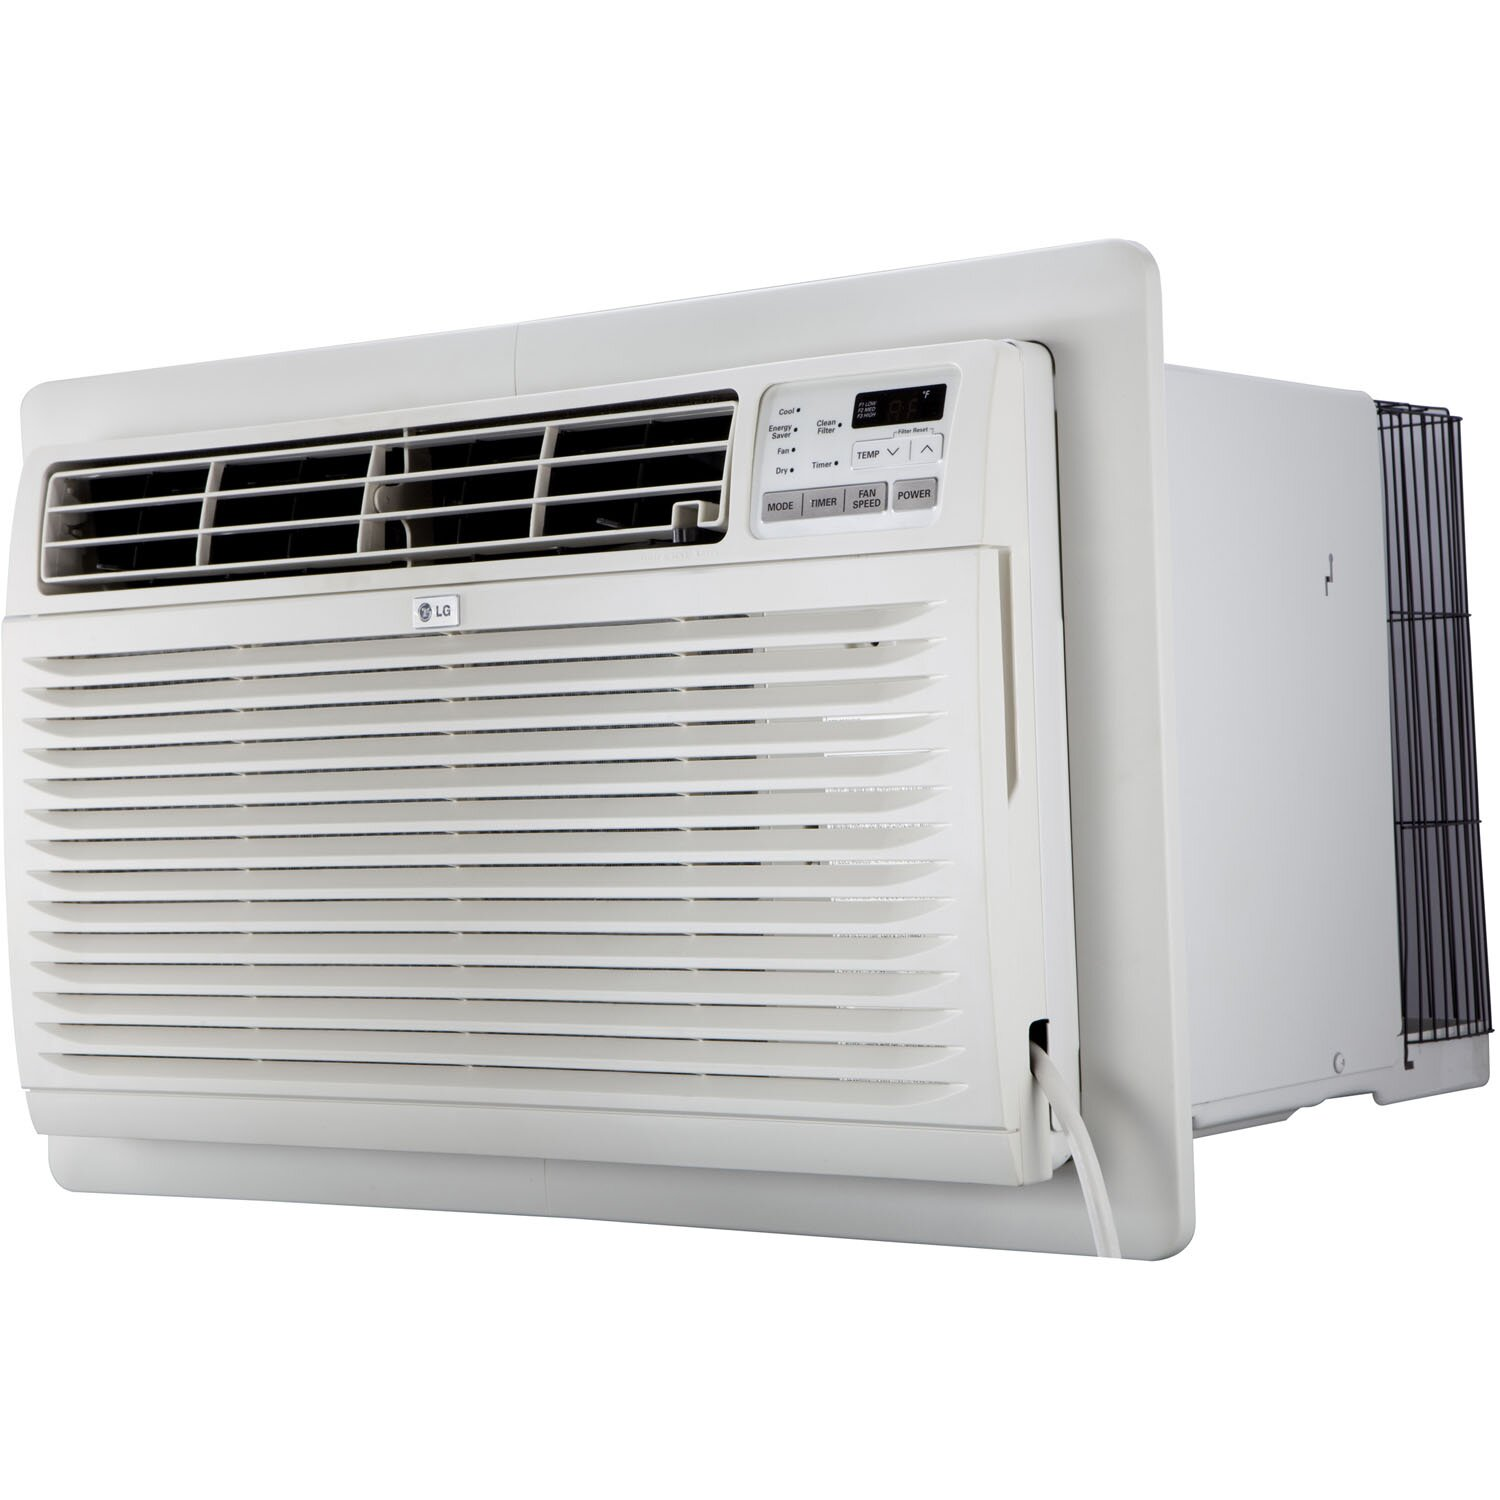 LG 9 800 BTU Energy Star Air Conditioner with Remote Wayfair #5D5B51